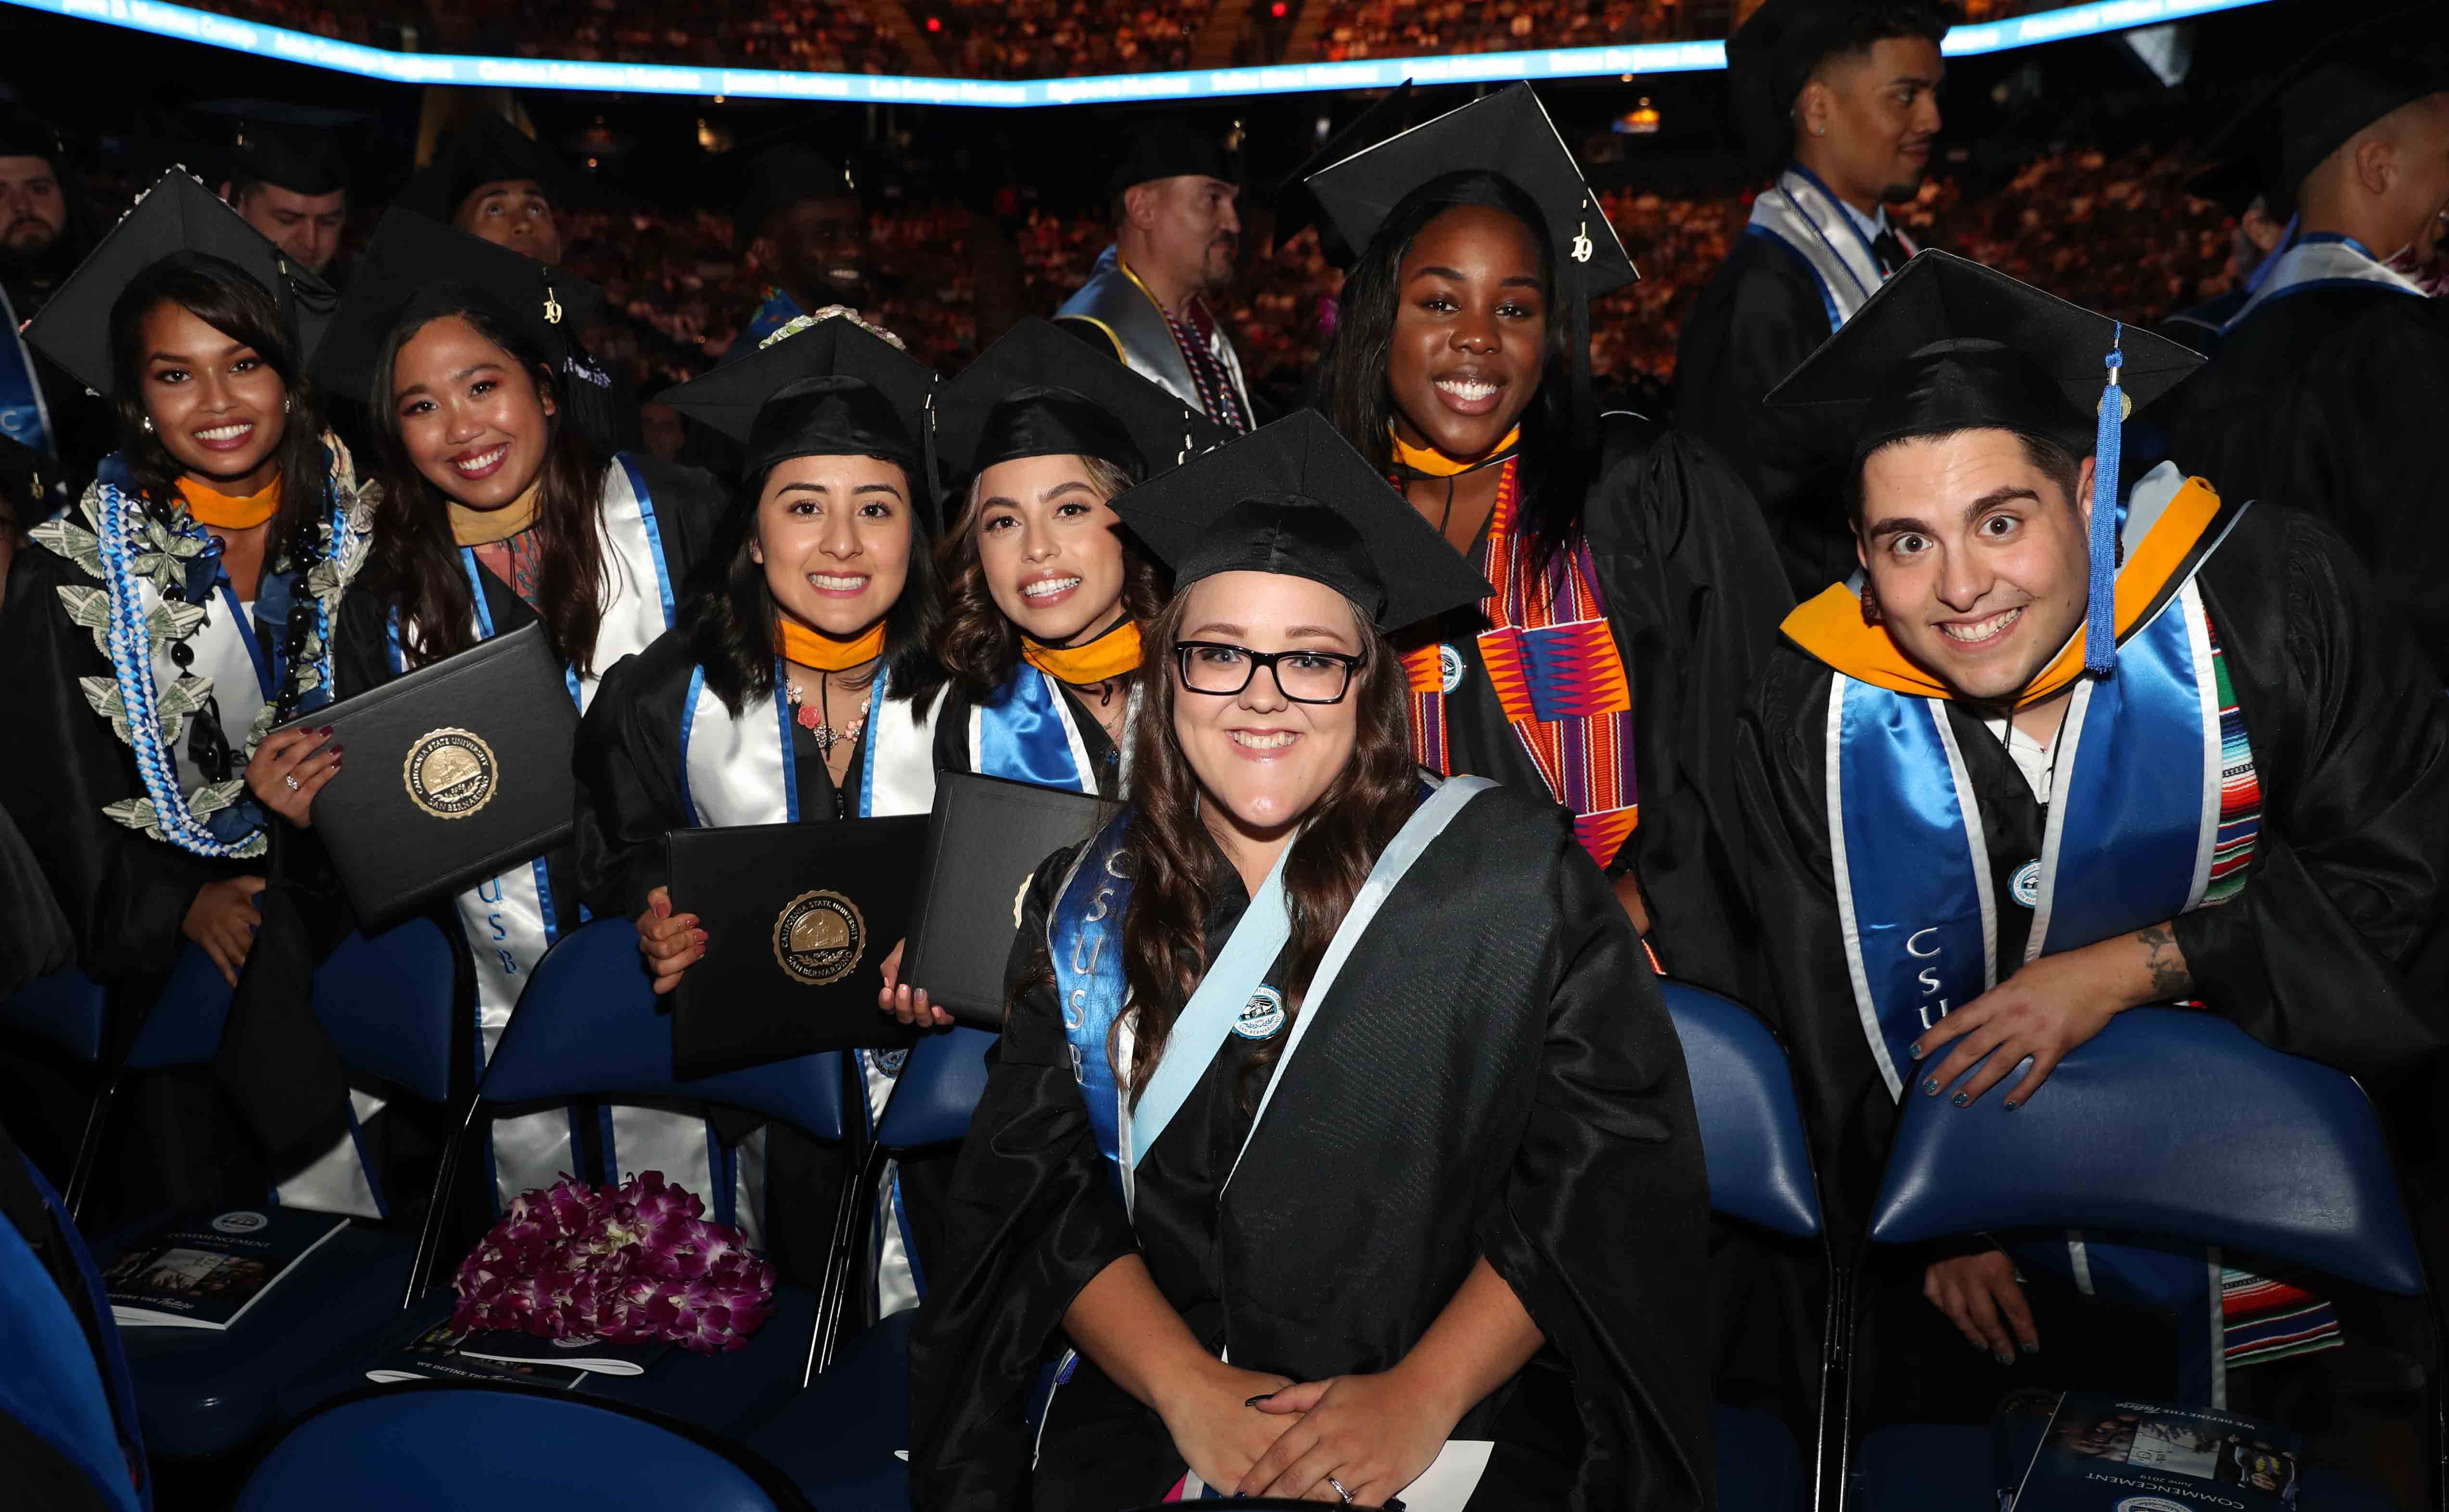 Members of CSUSB's Class of 2019